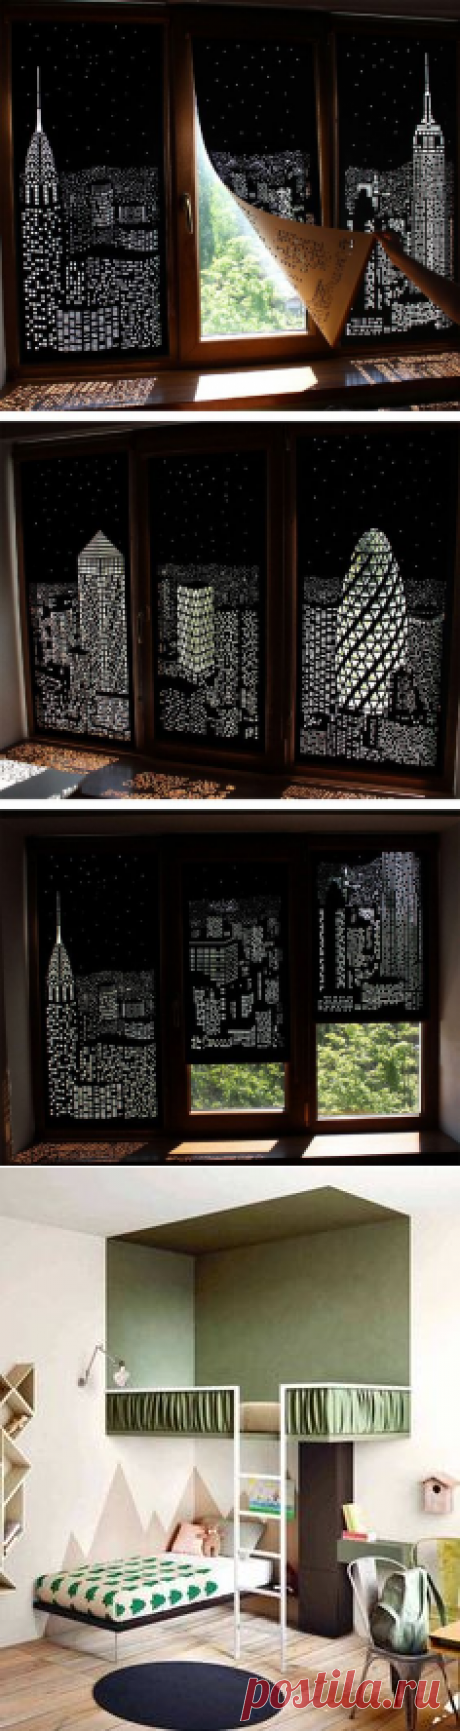 (183) Buildings and Stars Cut into Blackout Curtains Turn Your Windows Into Nighttime Cityscapes | home furniture projects